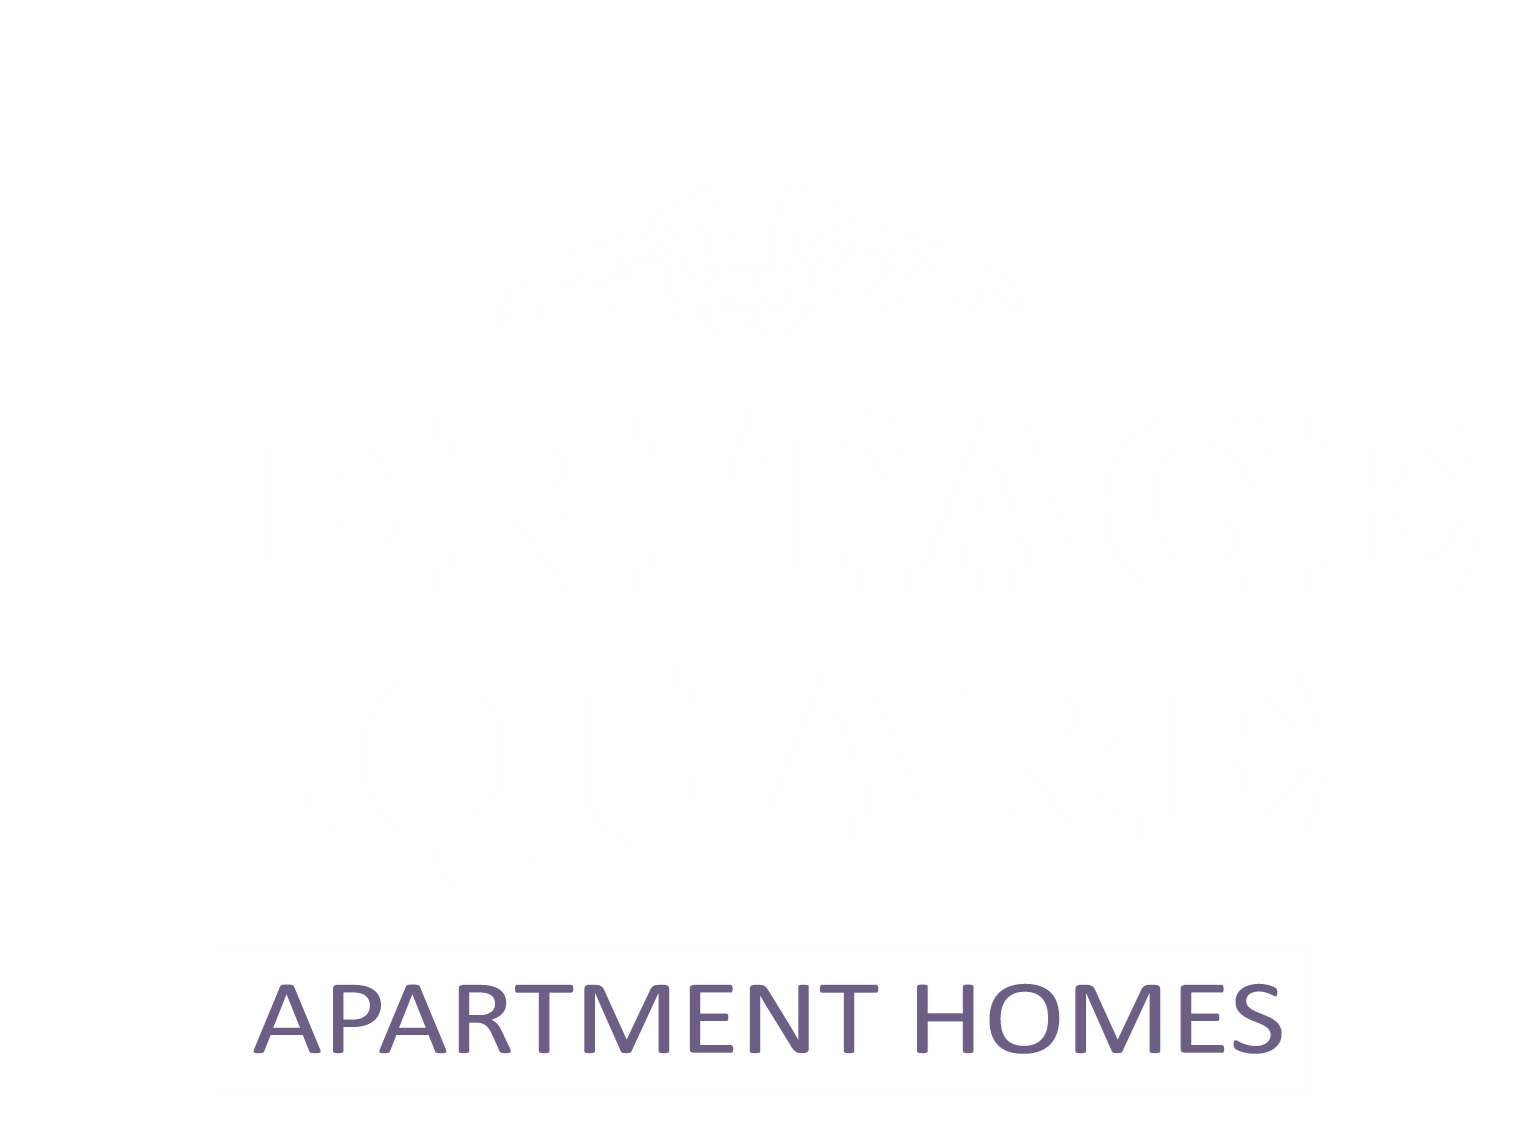 Property Logo at Heritage Square Apartment Homes, Waco, Texas, TX